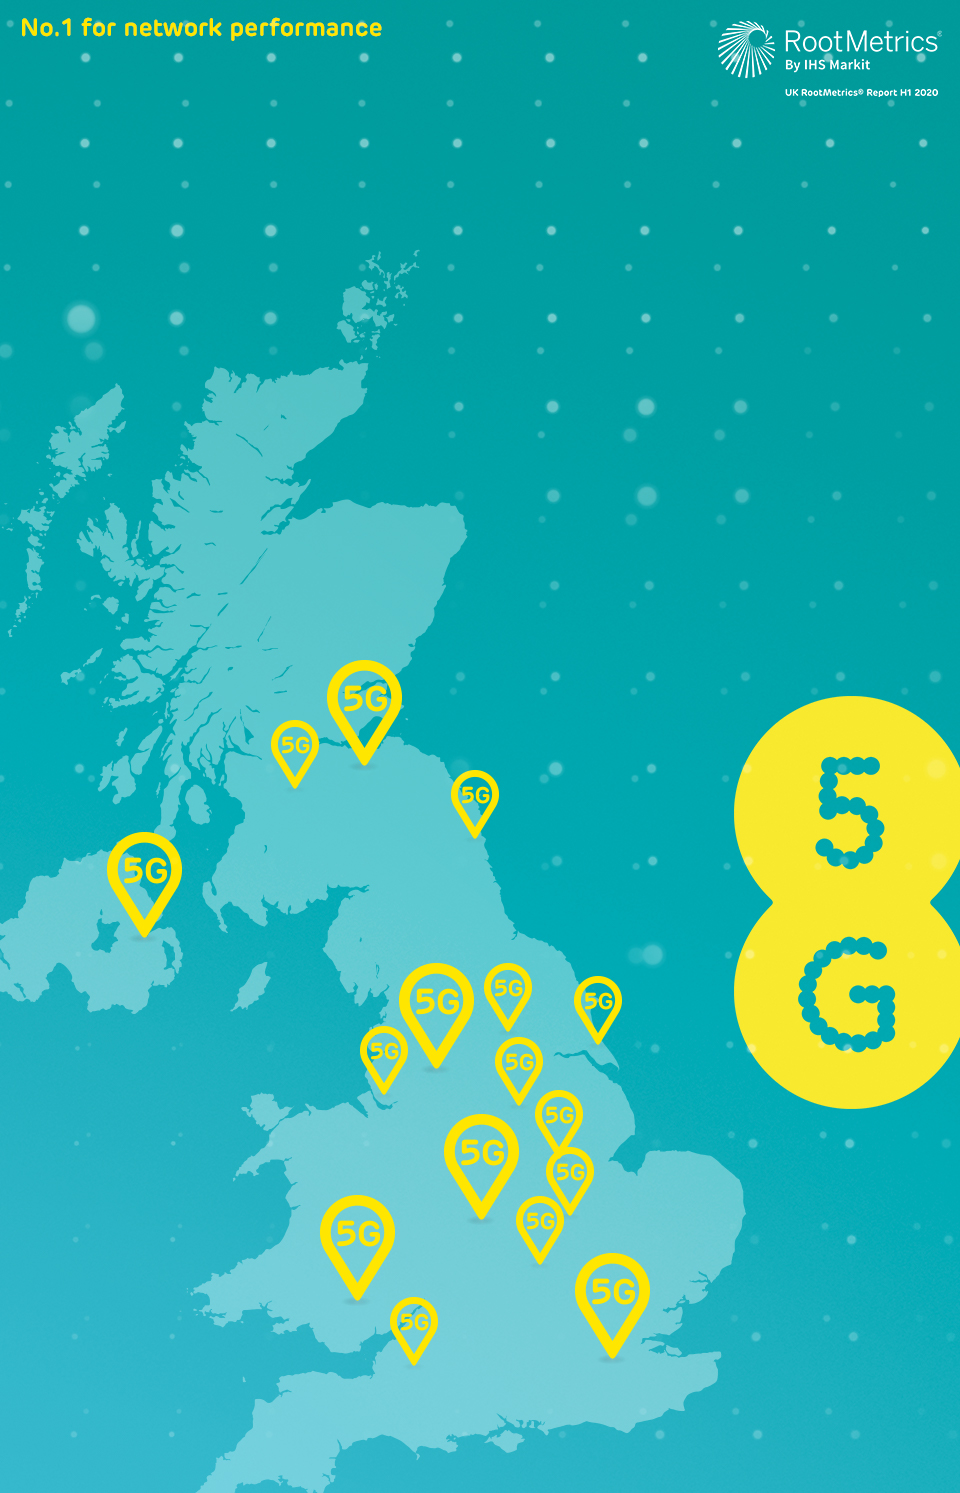 5G coverage on the UK's number one for network performance